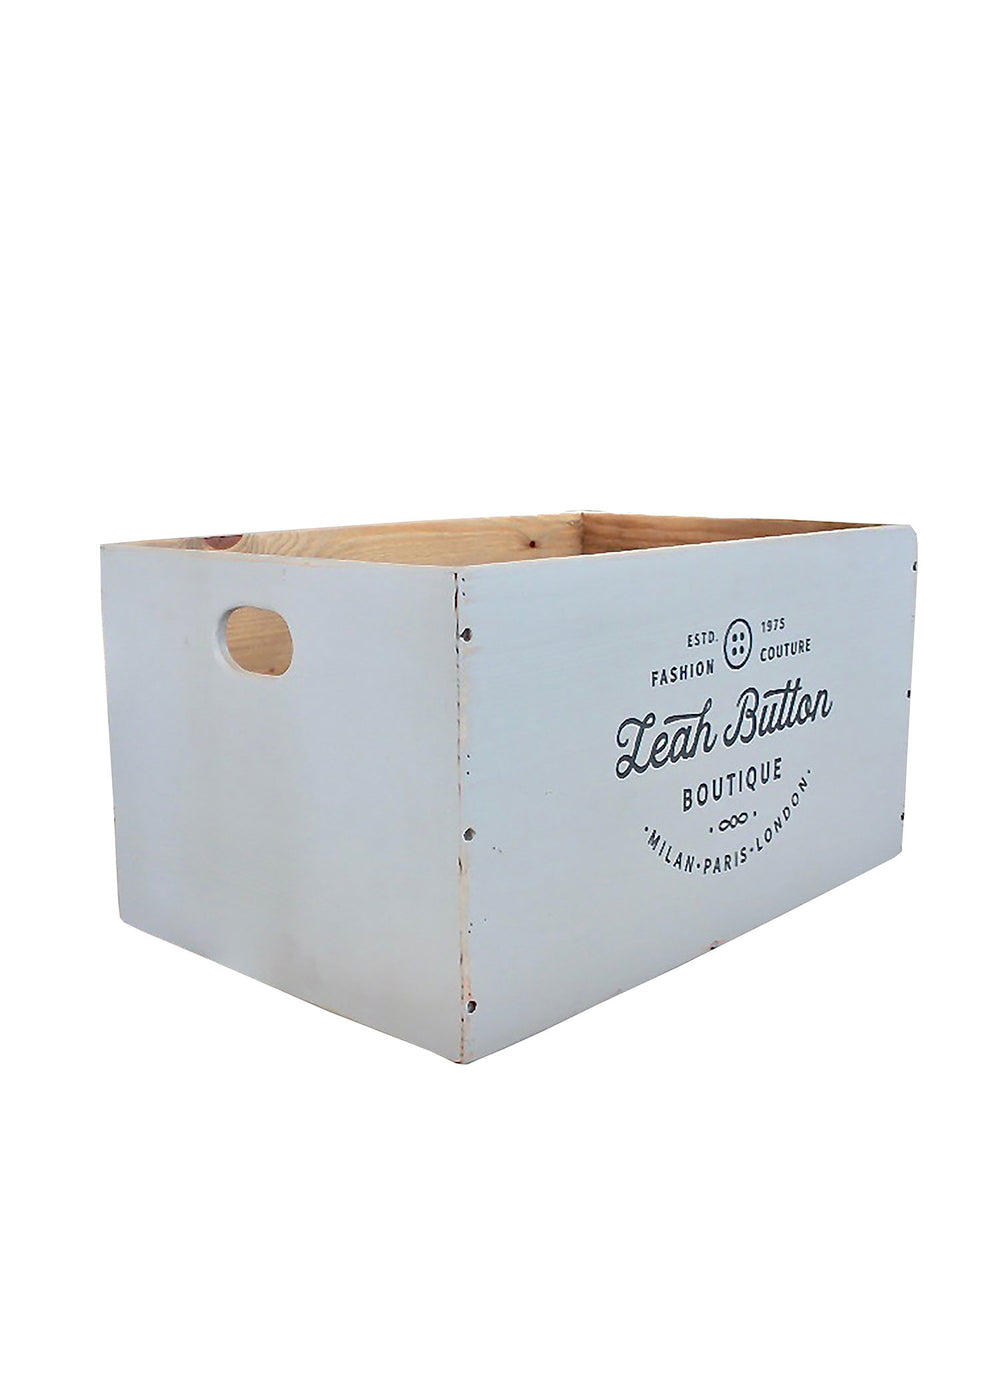 Vintage Toy Boxes